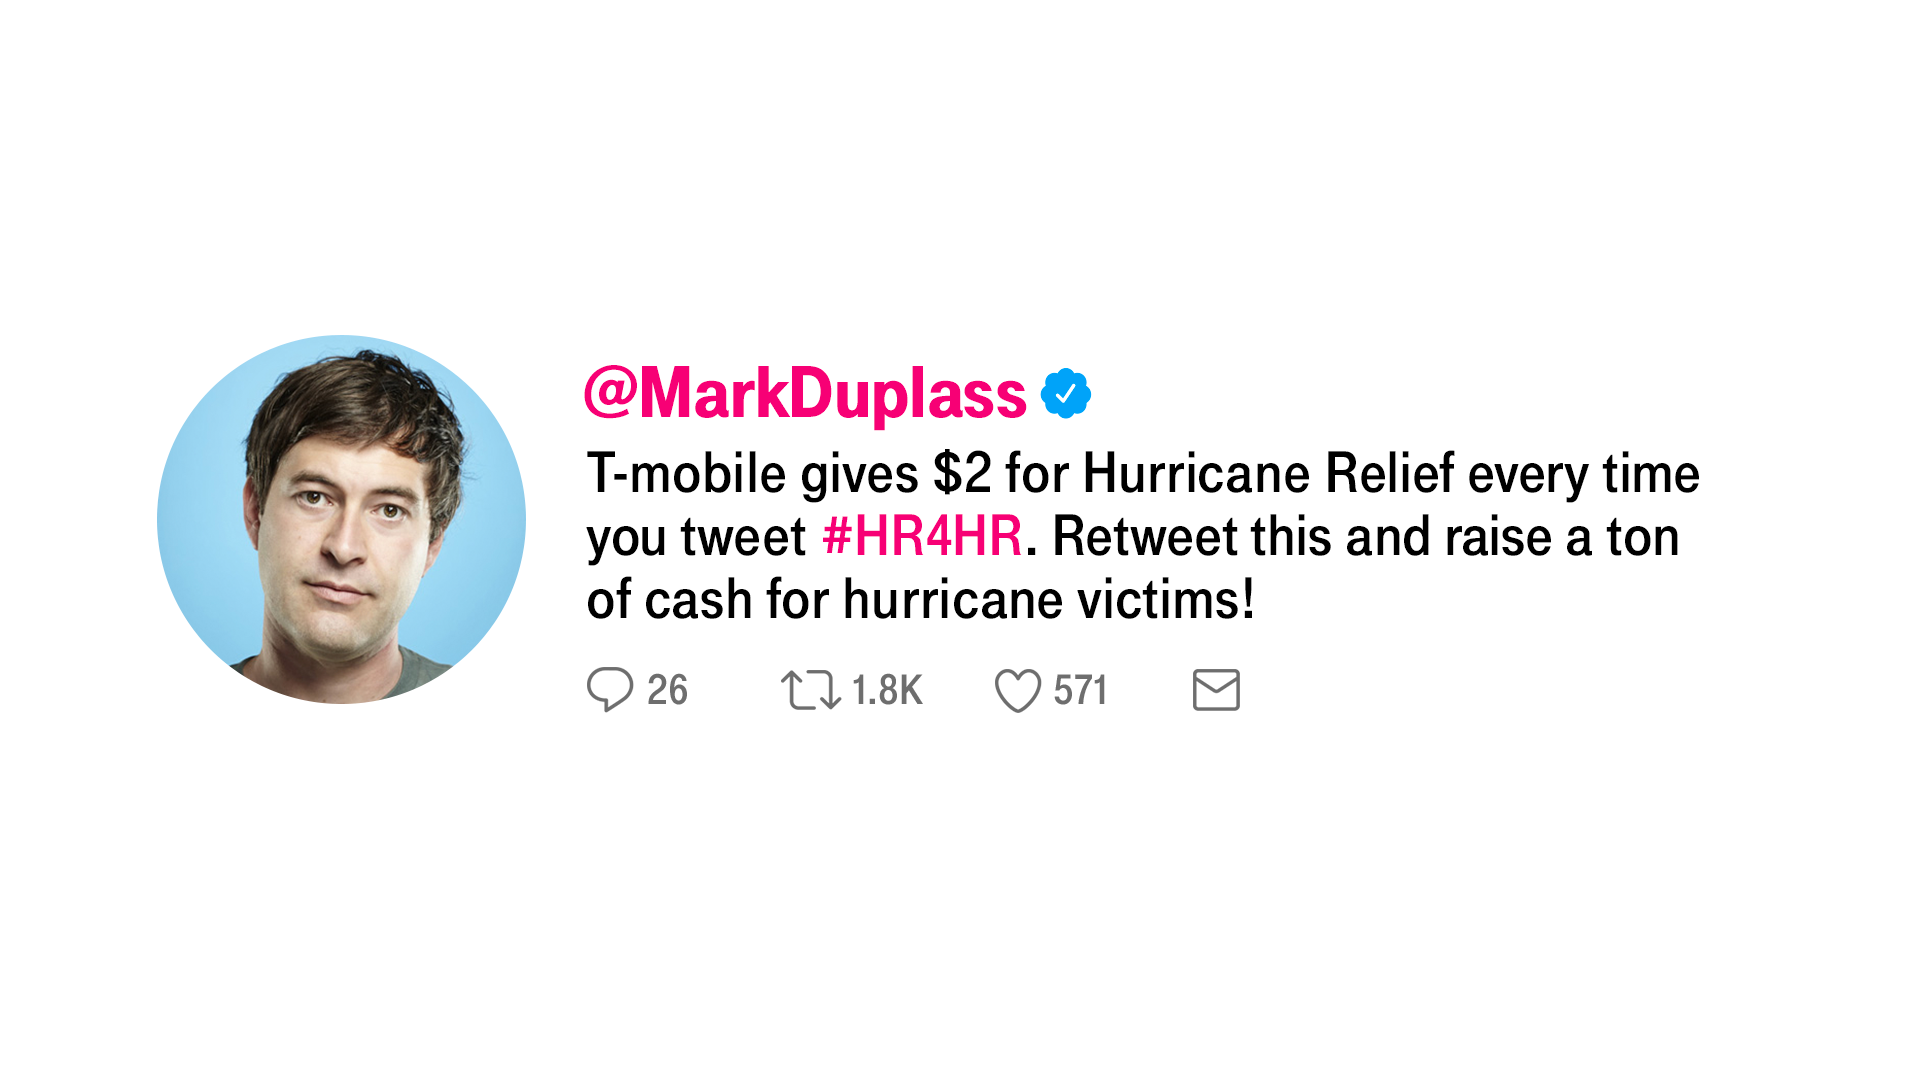 HR4HR_Tweets_Single_Influencers_MarkDuplass.png